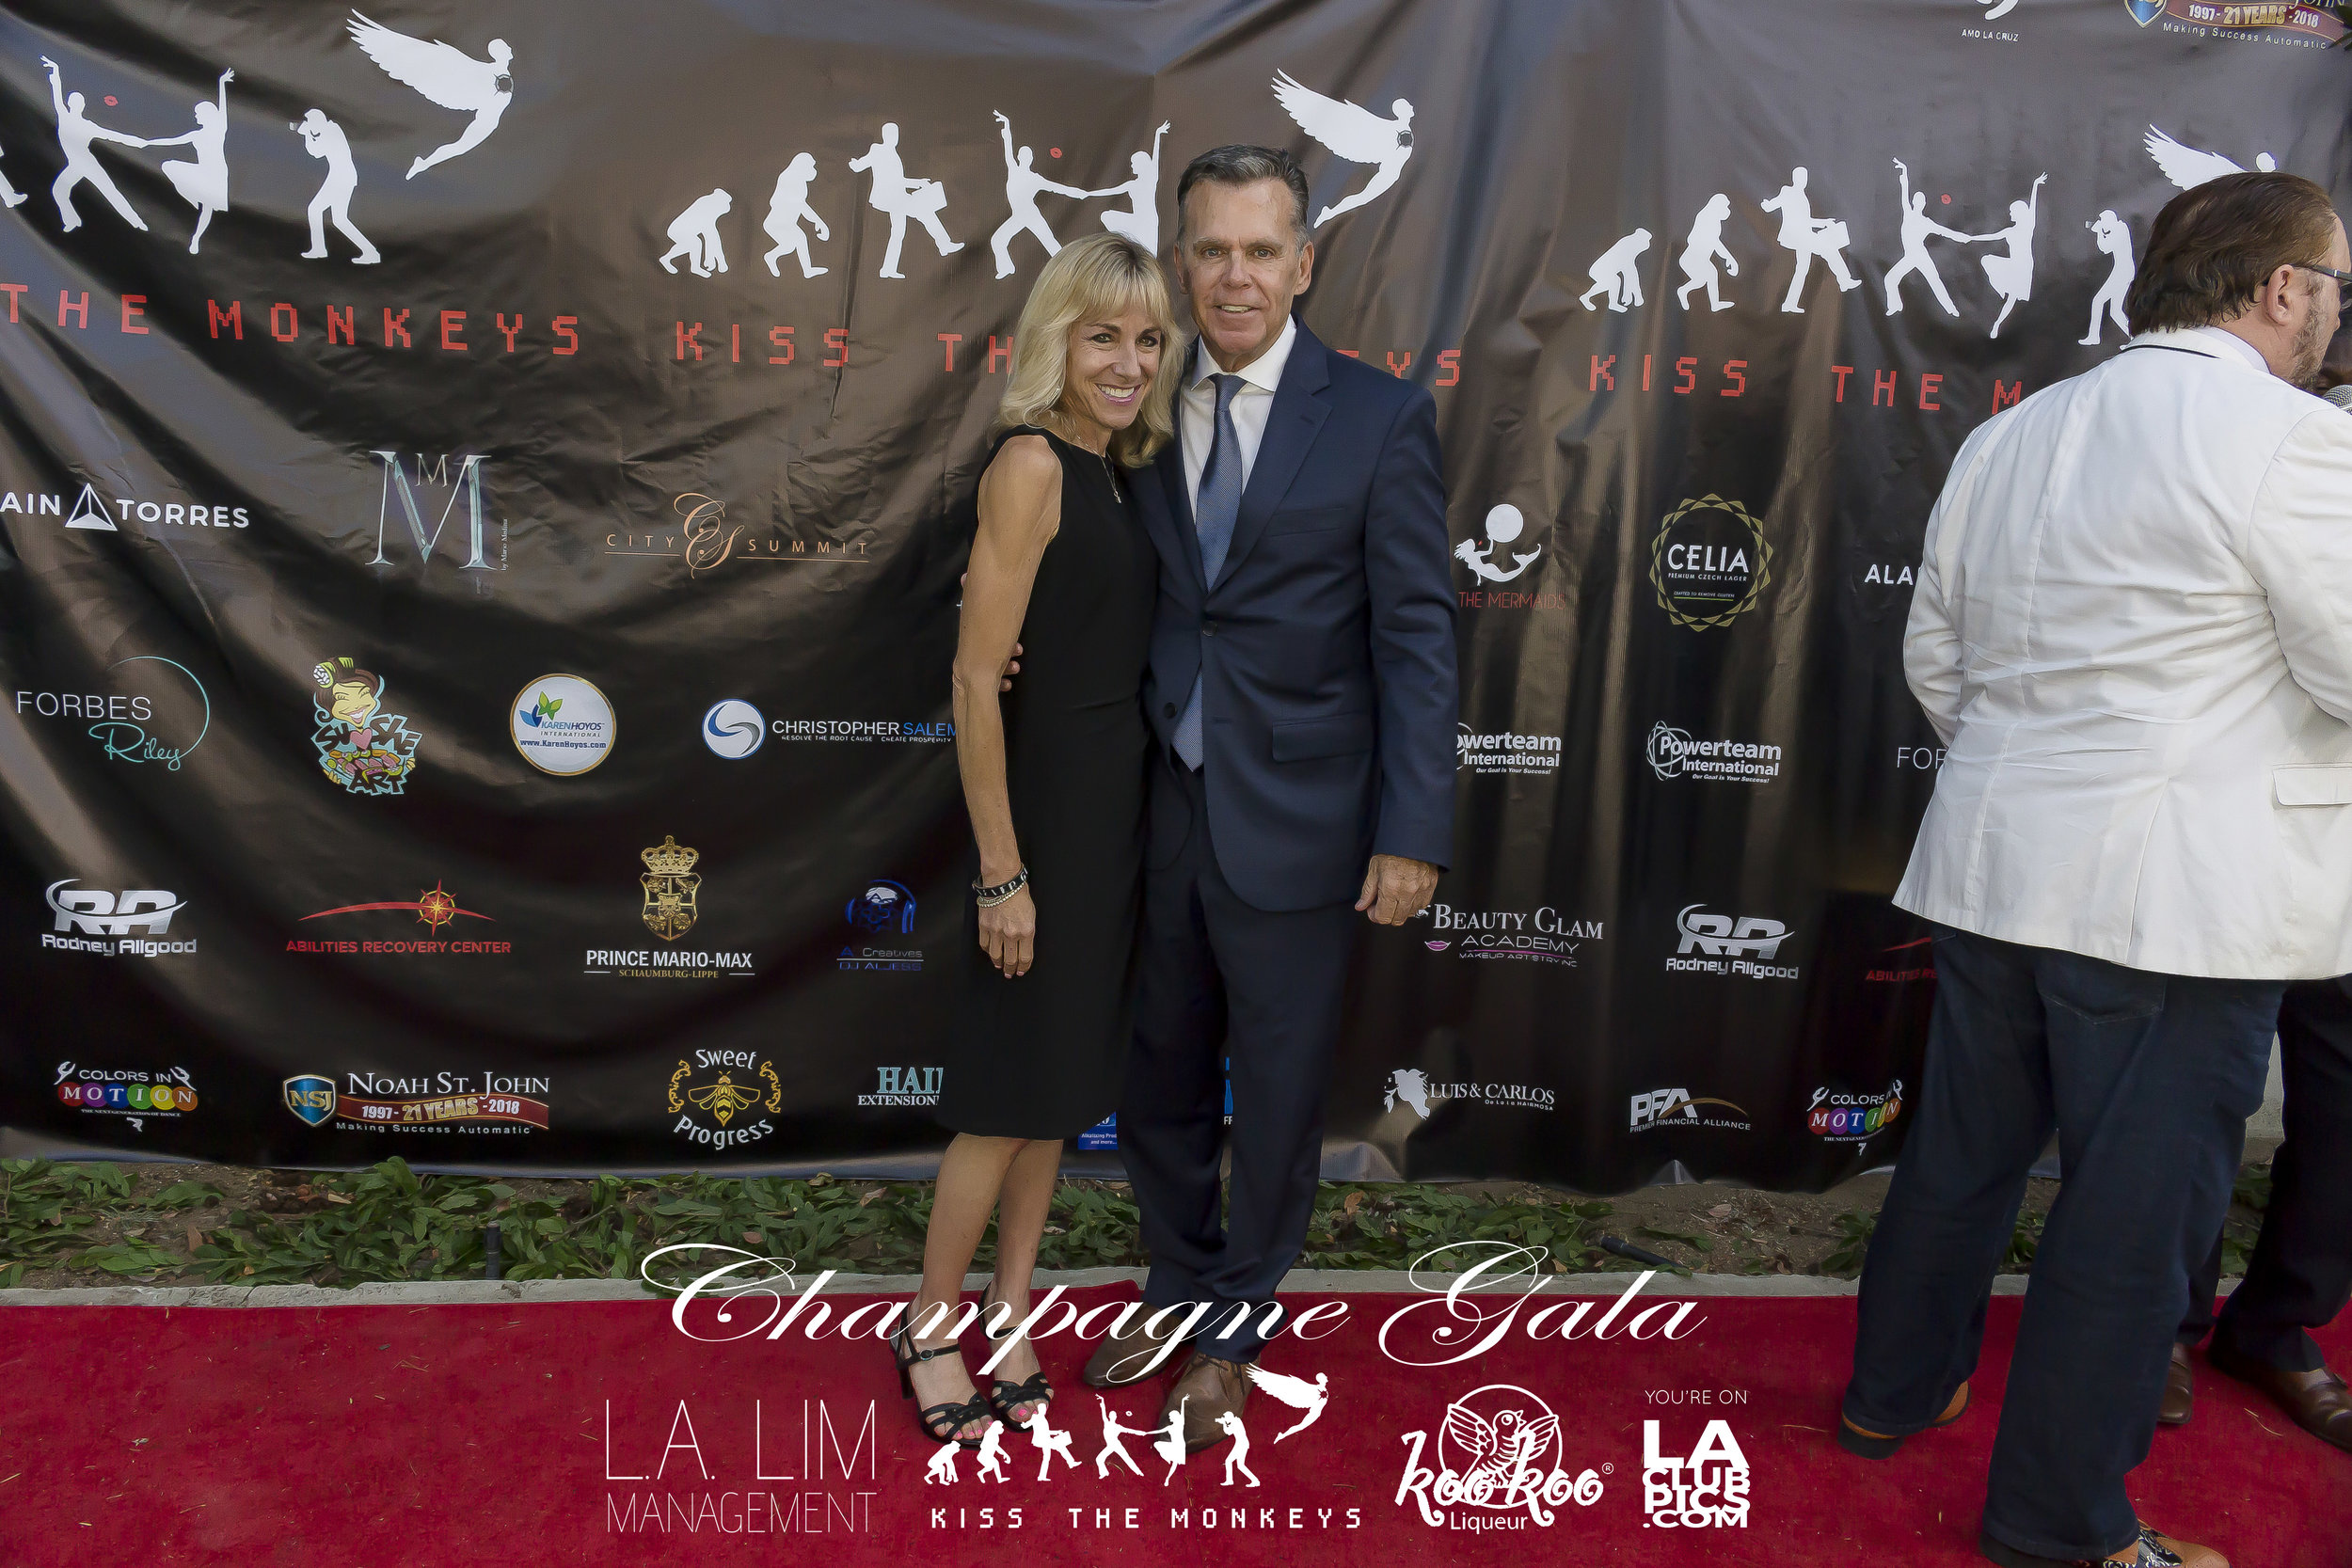 Kiss The Monkeys - Champagne Gala - 07-21-18_126.jpg